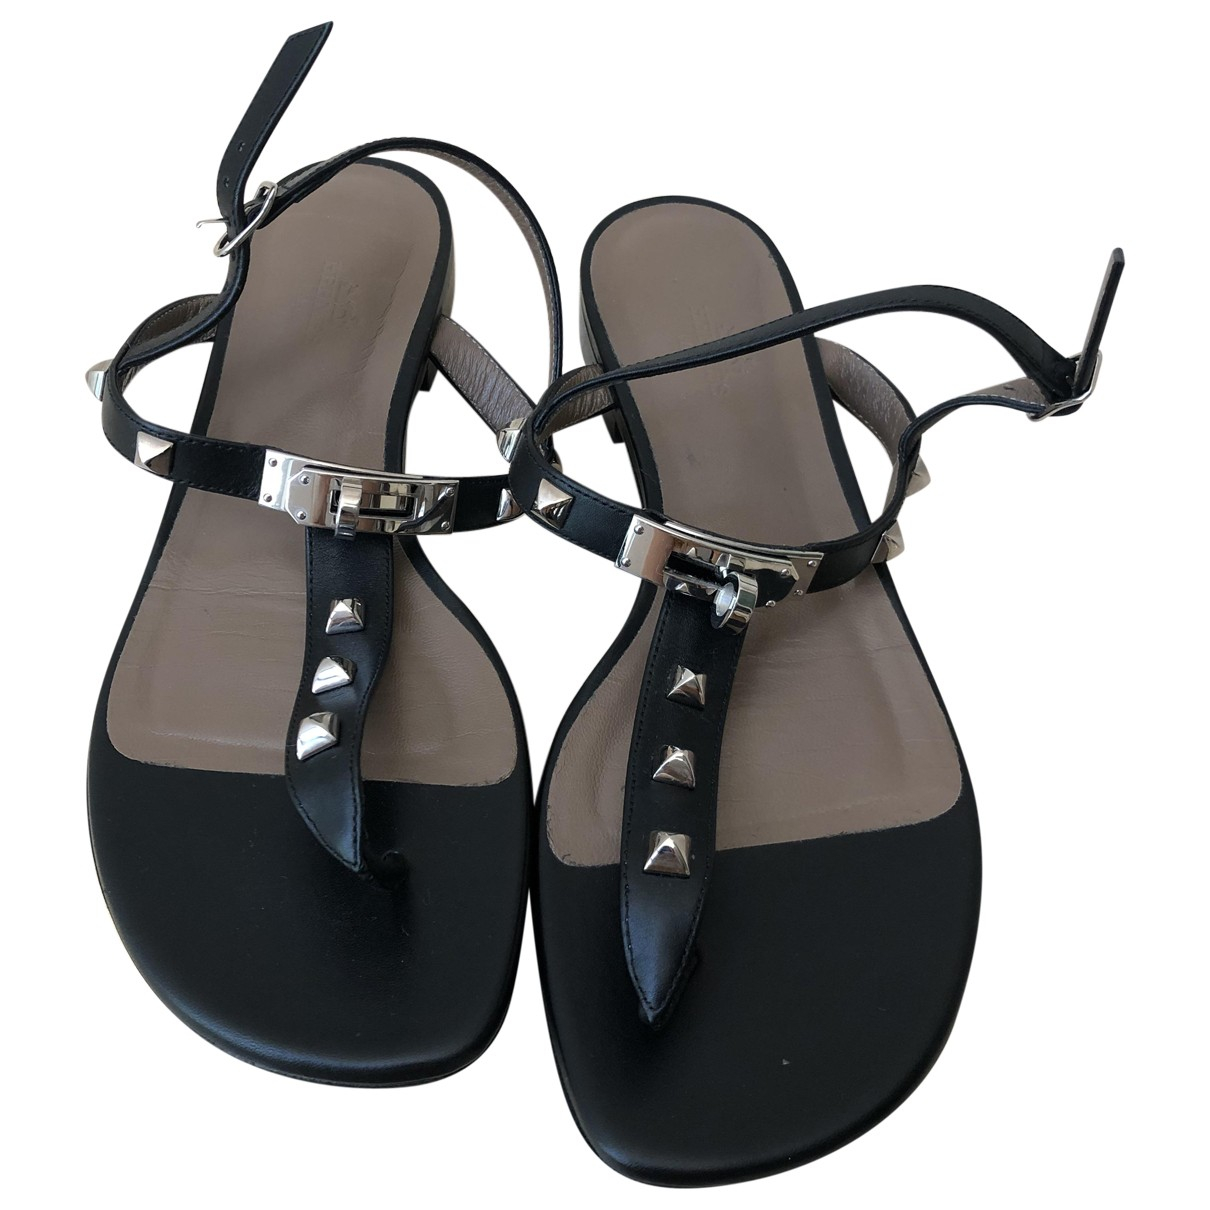 Hermès \N Black Leather Sandals for Women 37 EU